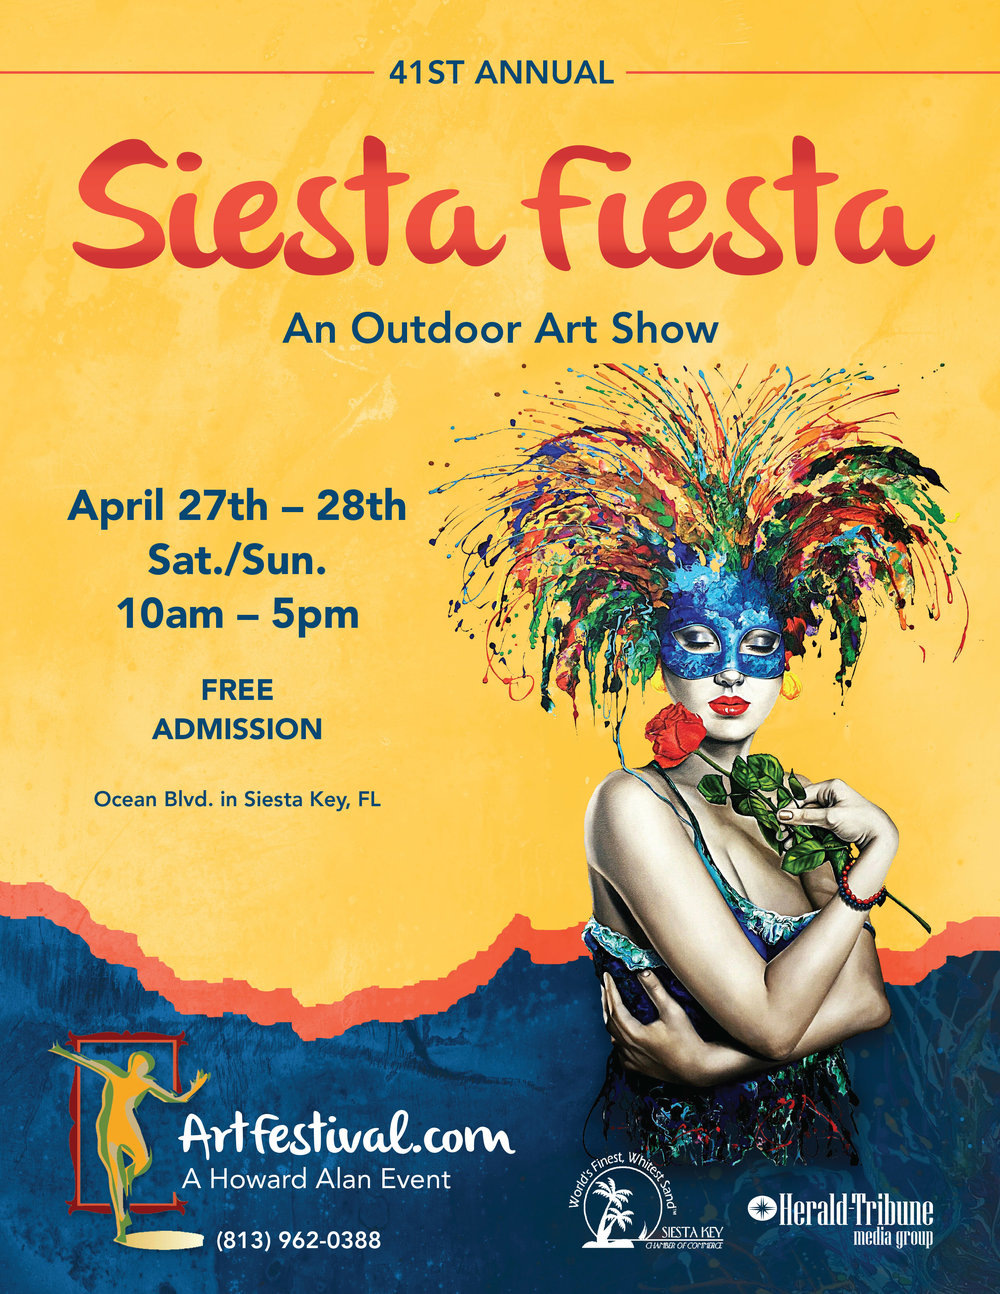 siesta_fiesta_april_2019_flyer.jpg